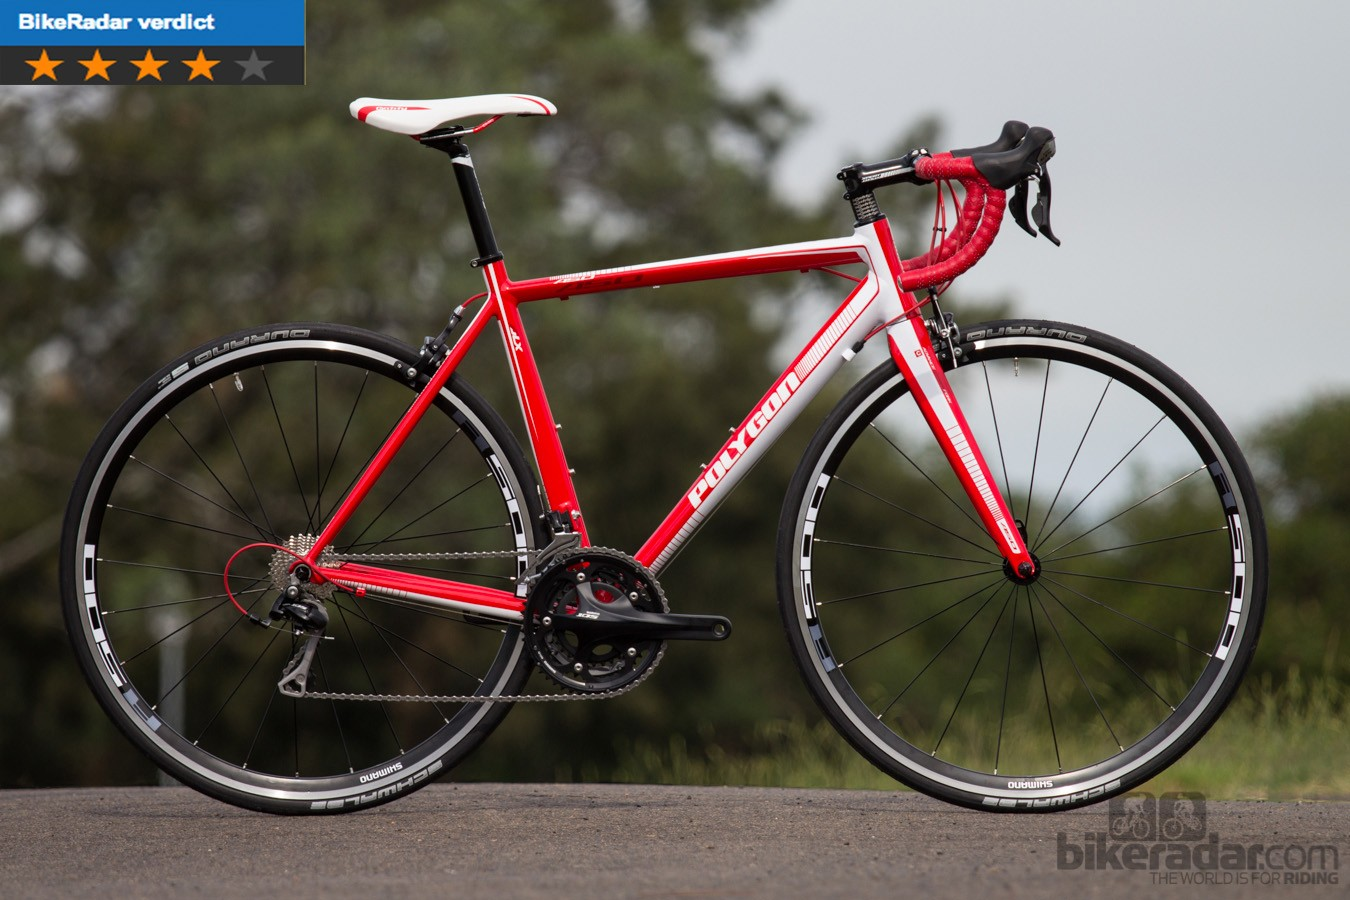 The Polygon Helios A5.0 came in a close second. It shares a similar confidence with the Cell, is lightweight and built to perfection, and offers great value - but we didn't love the gearing choice